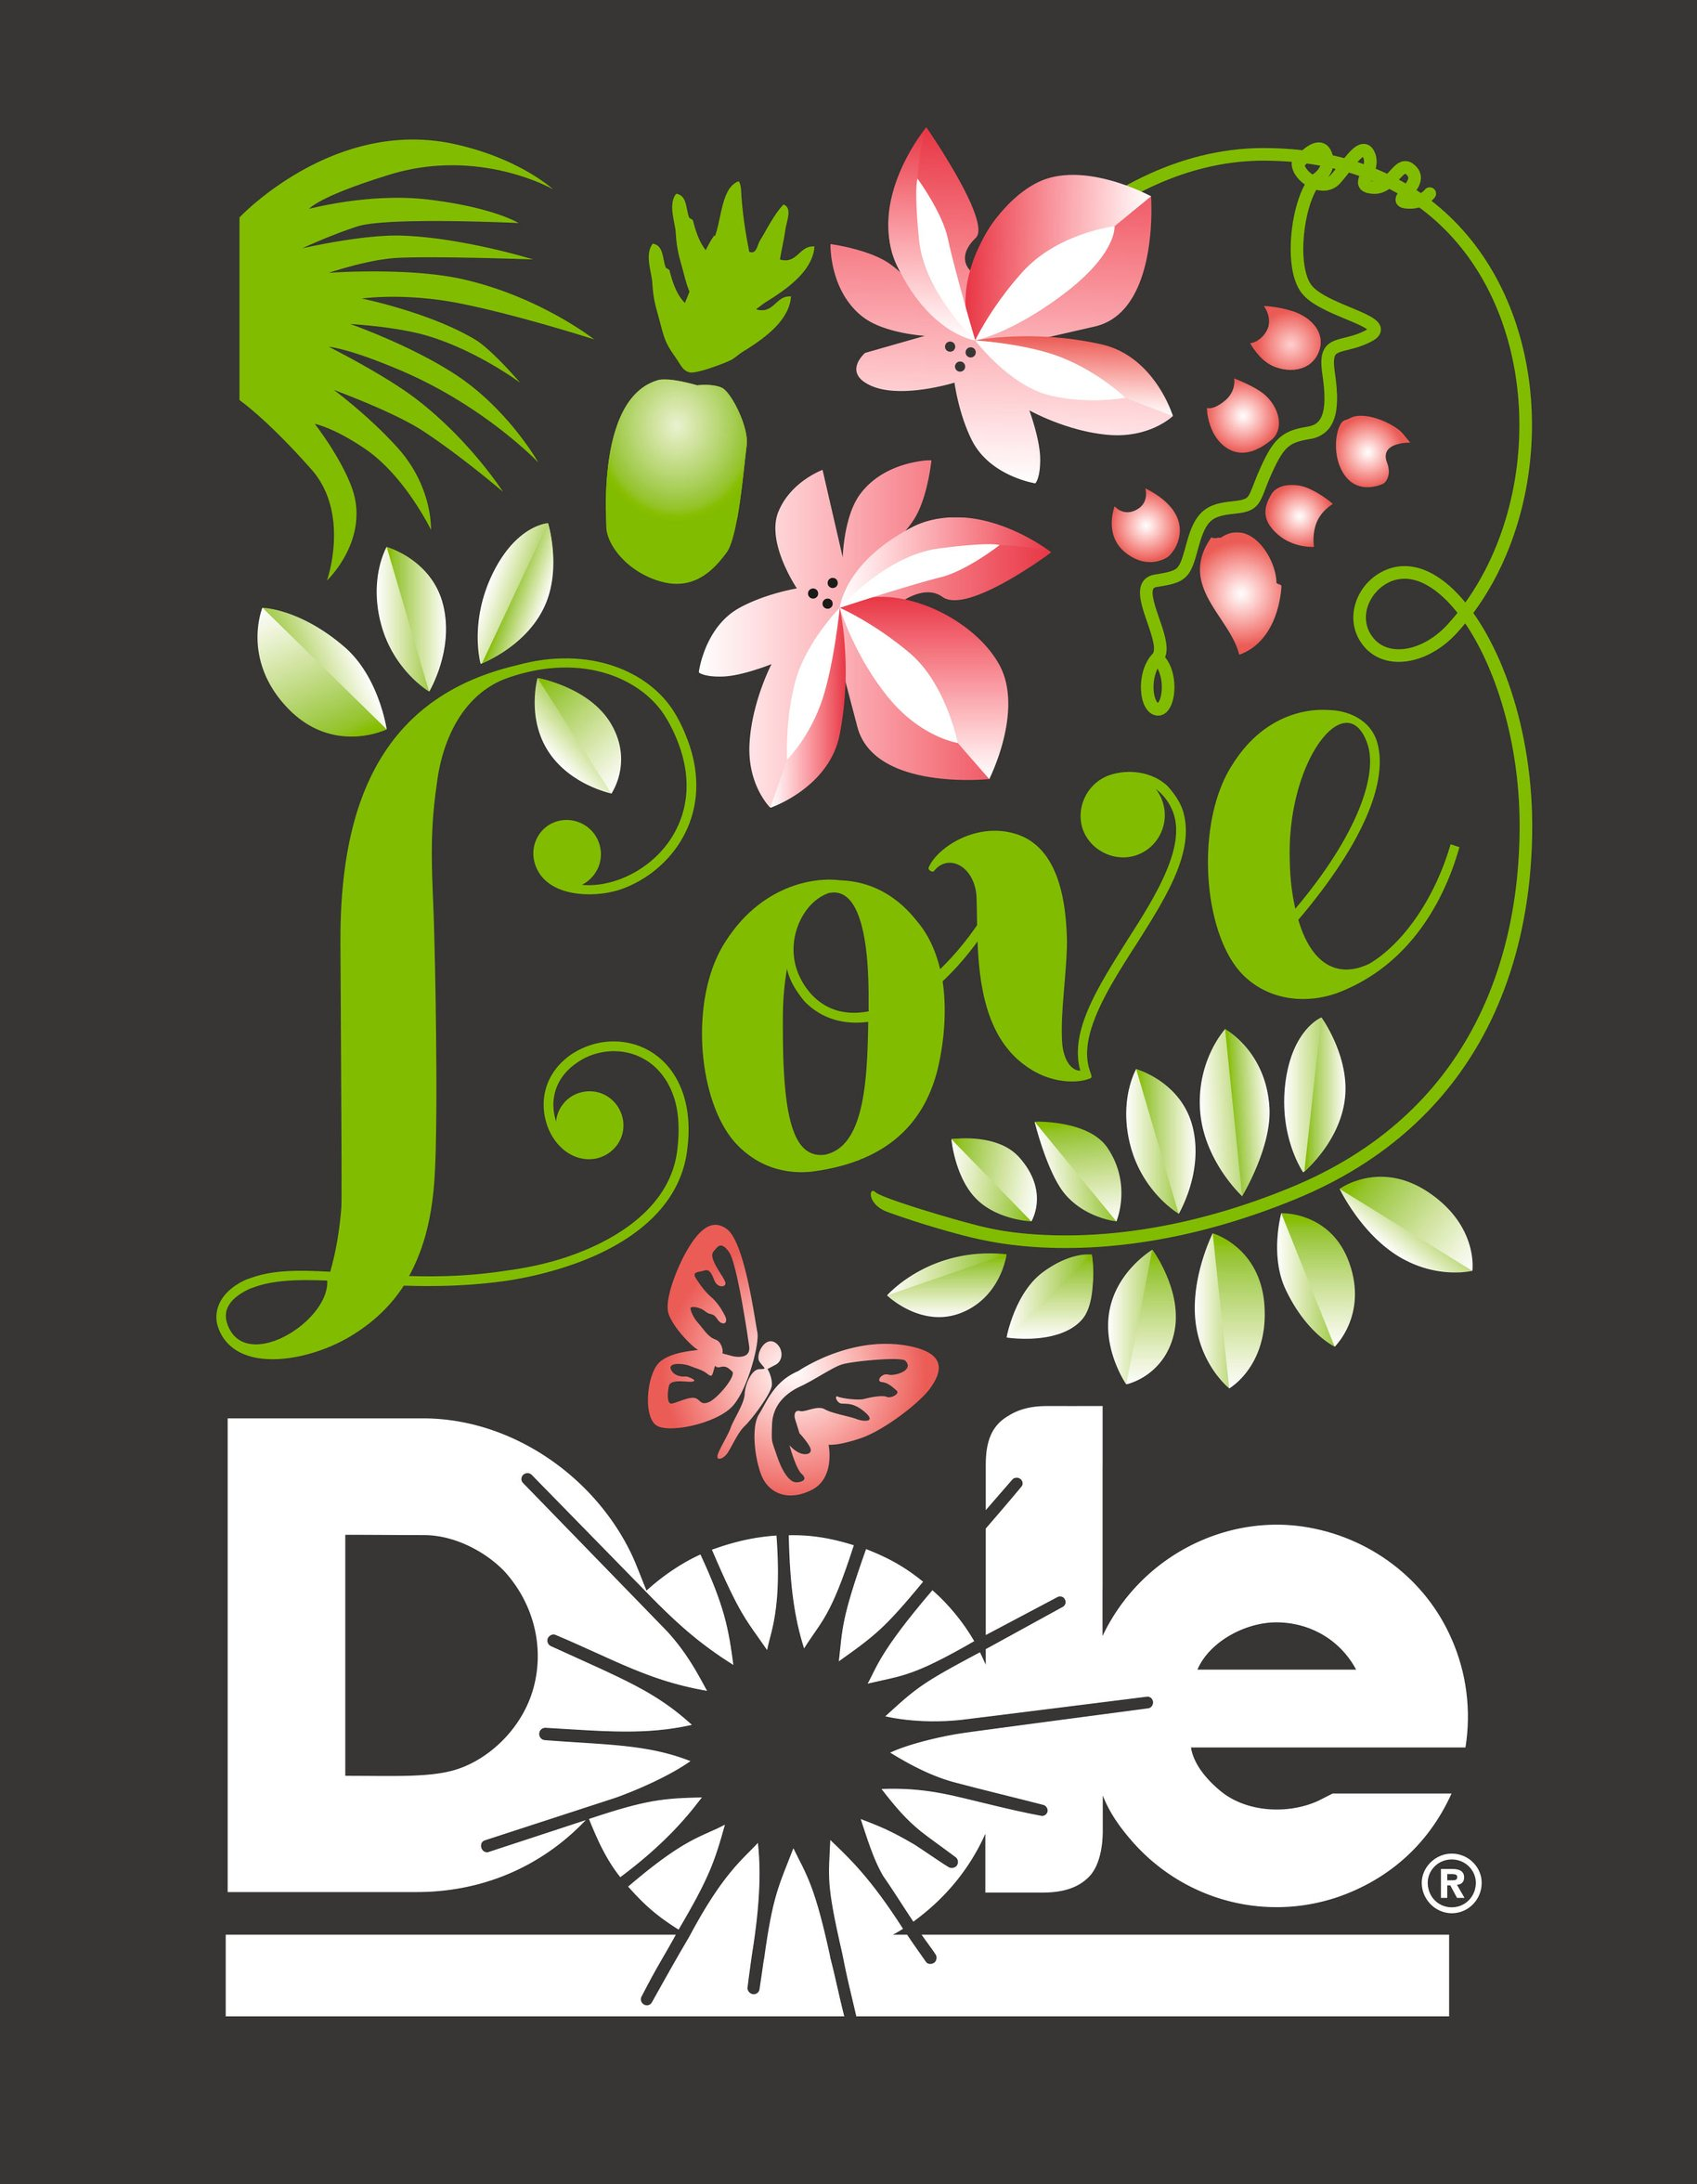 Love Dole graphic design